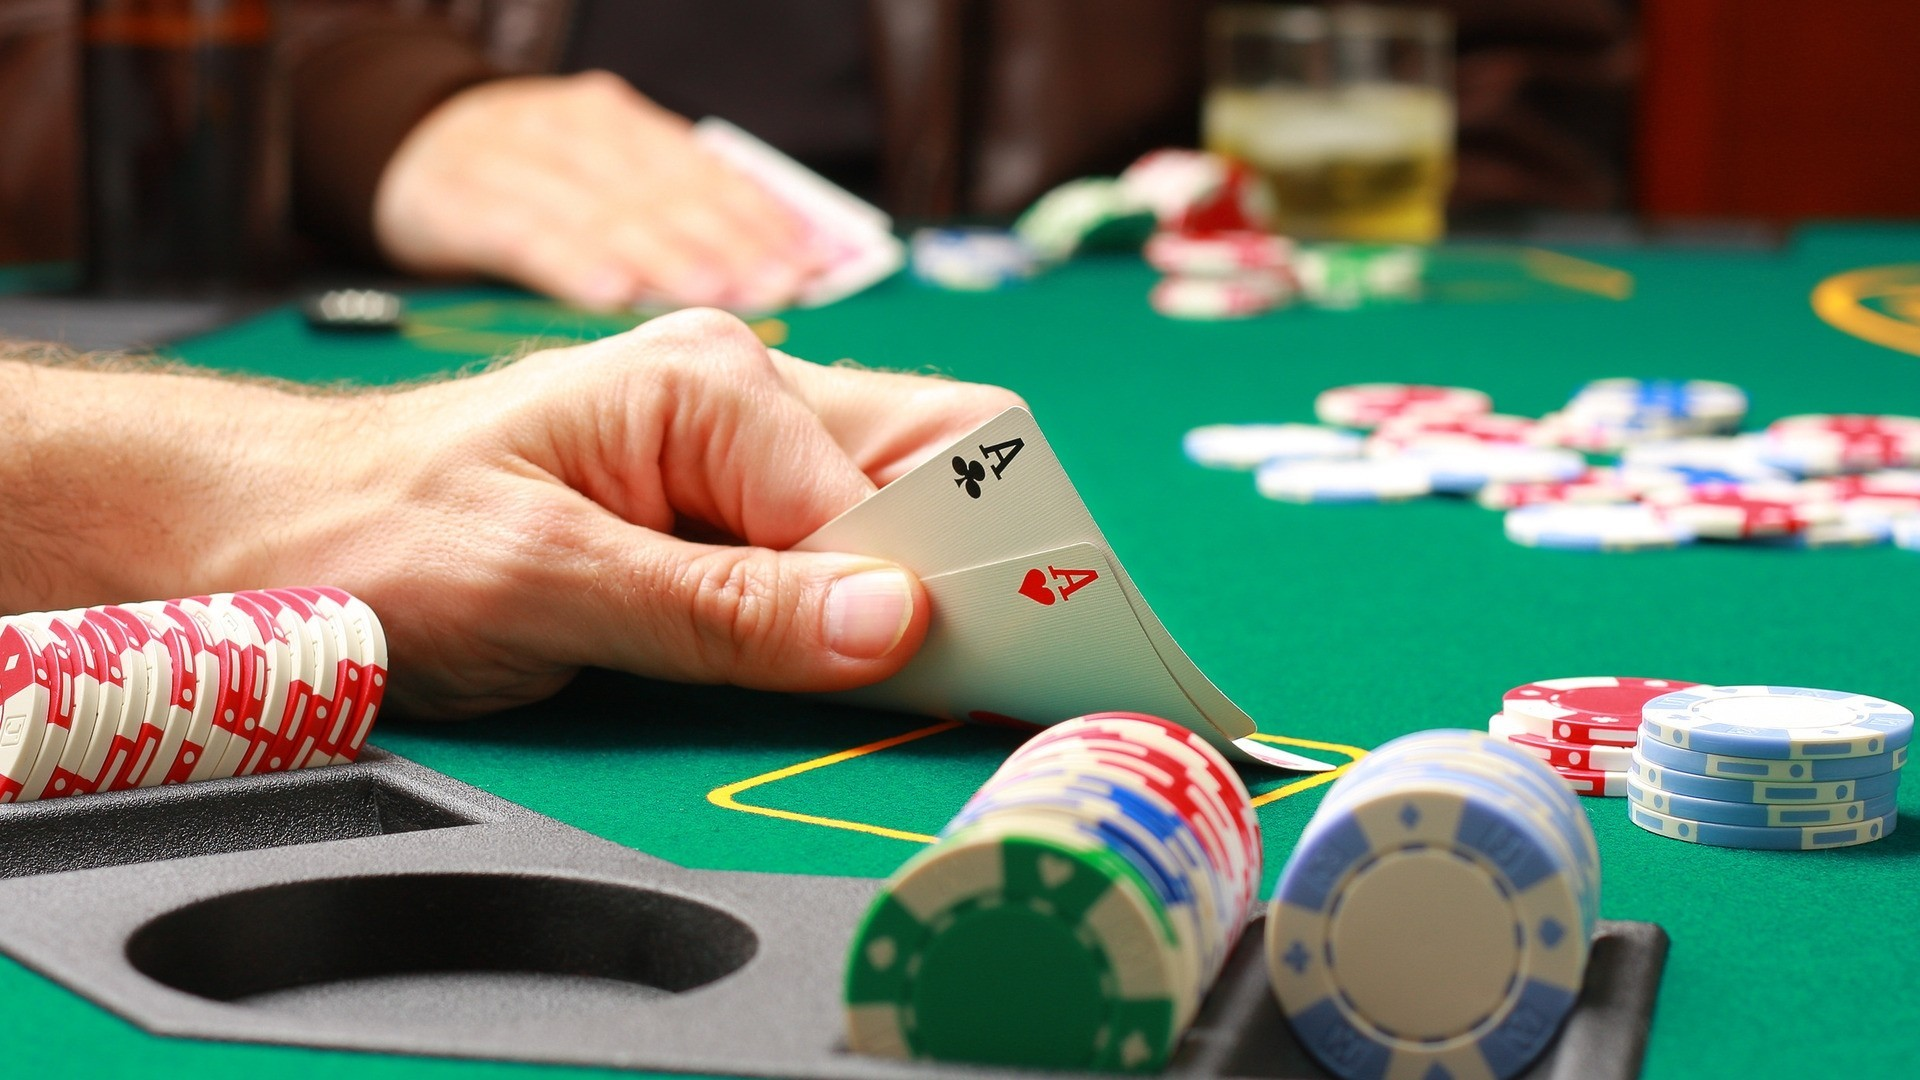 Are You Ready To Move The Online Casino Check?